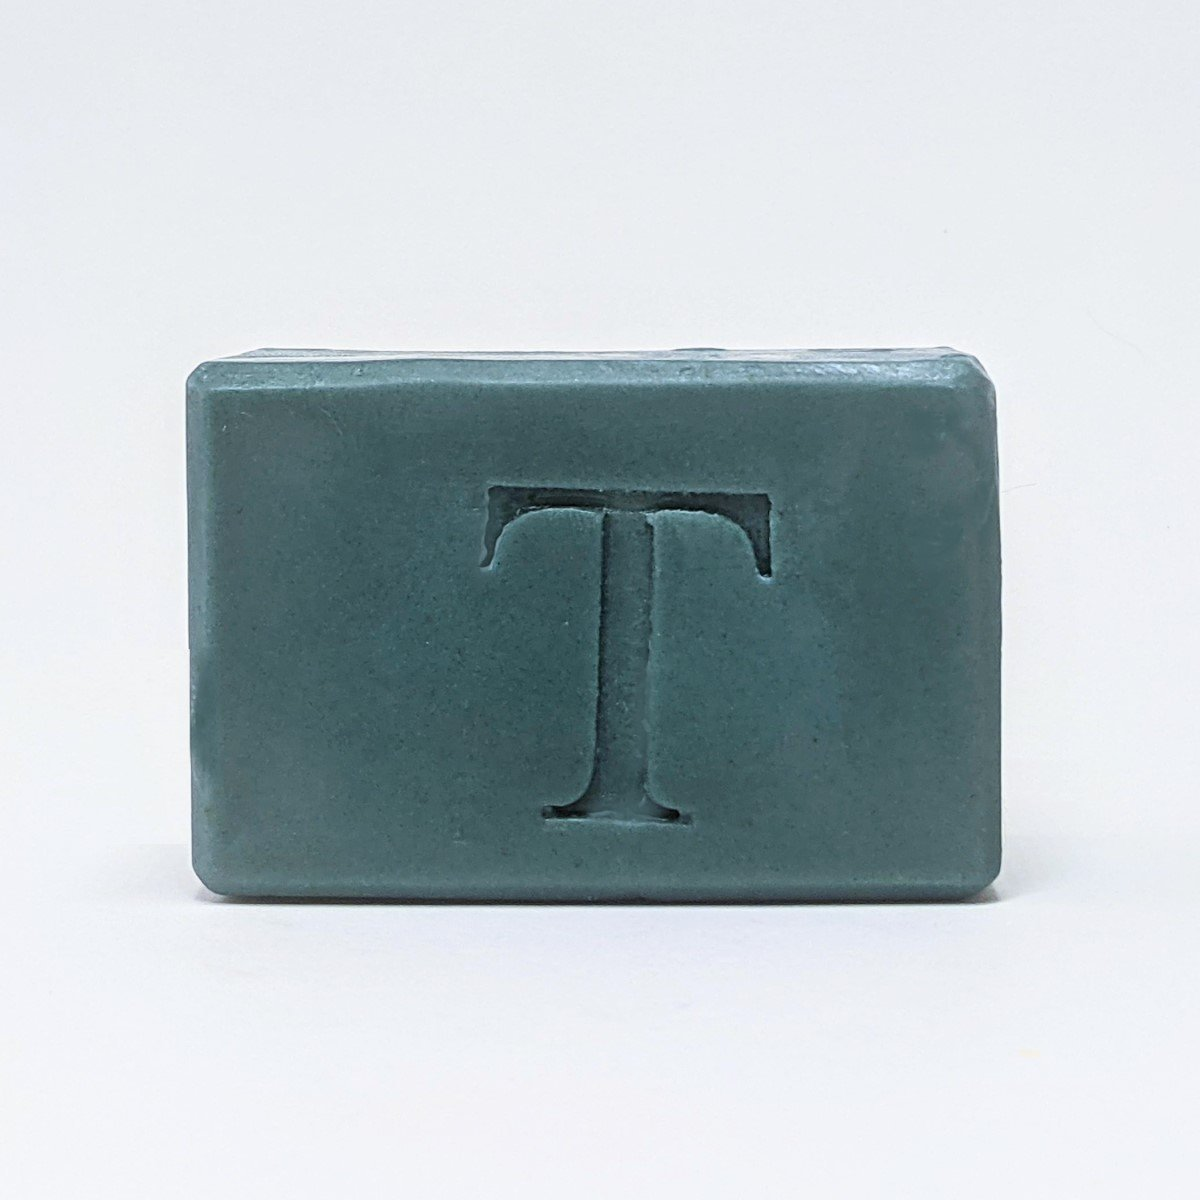 Evergreen Forest Goat's Milk Soap Bar, All Natural with Essential Oils, Activated Charcoal, Shea and Cocoa Butter - Thompson's Luxury Soap